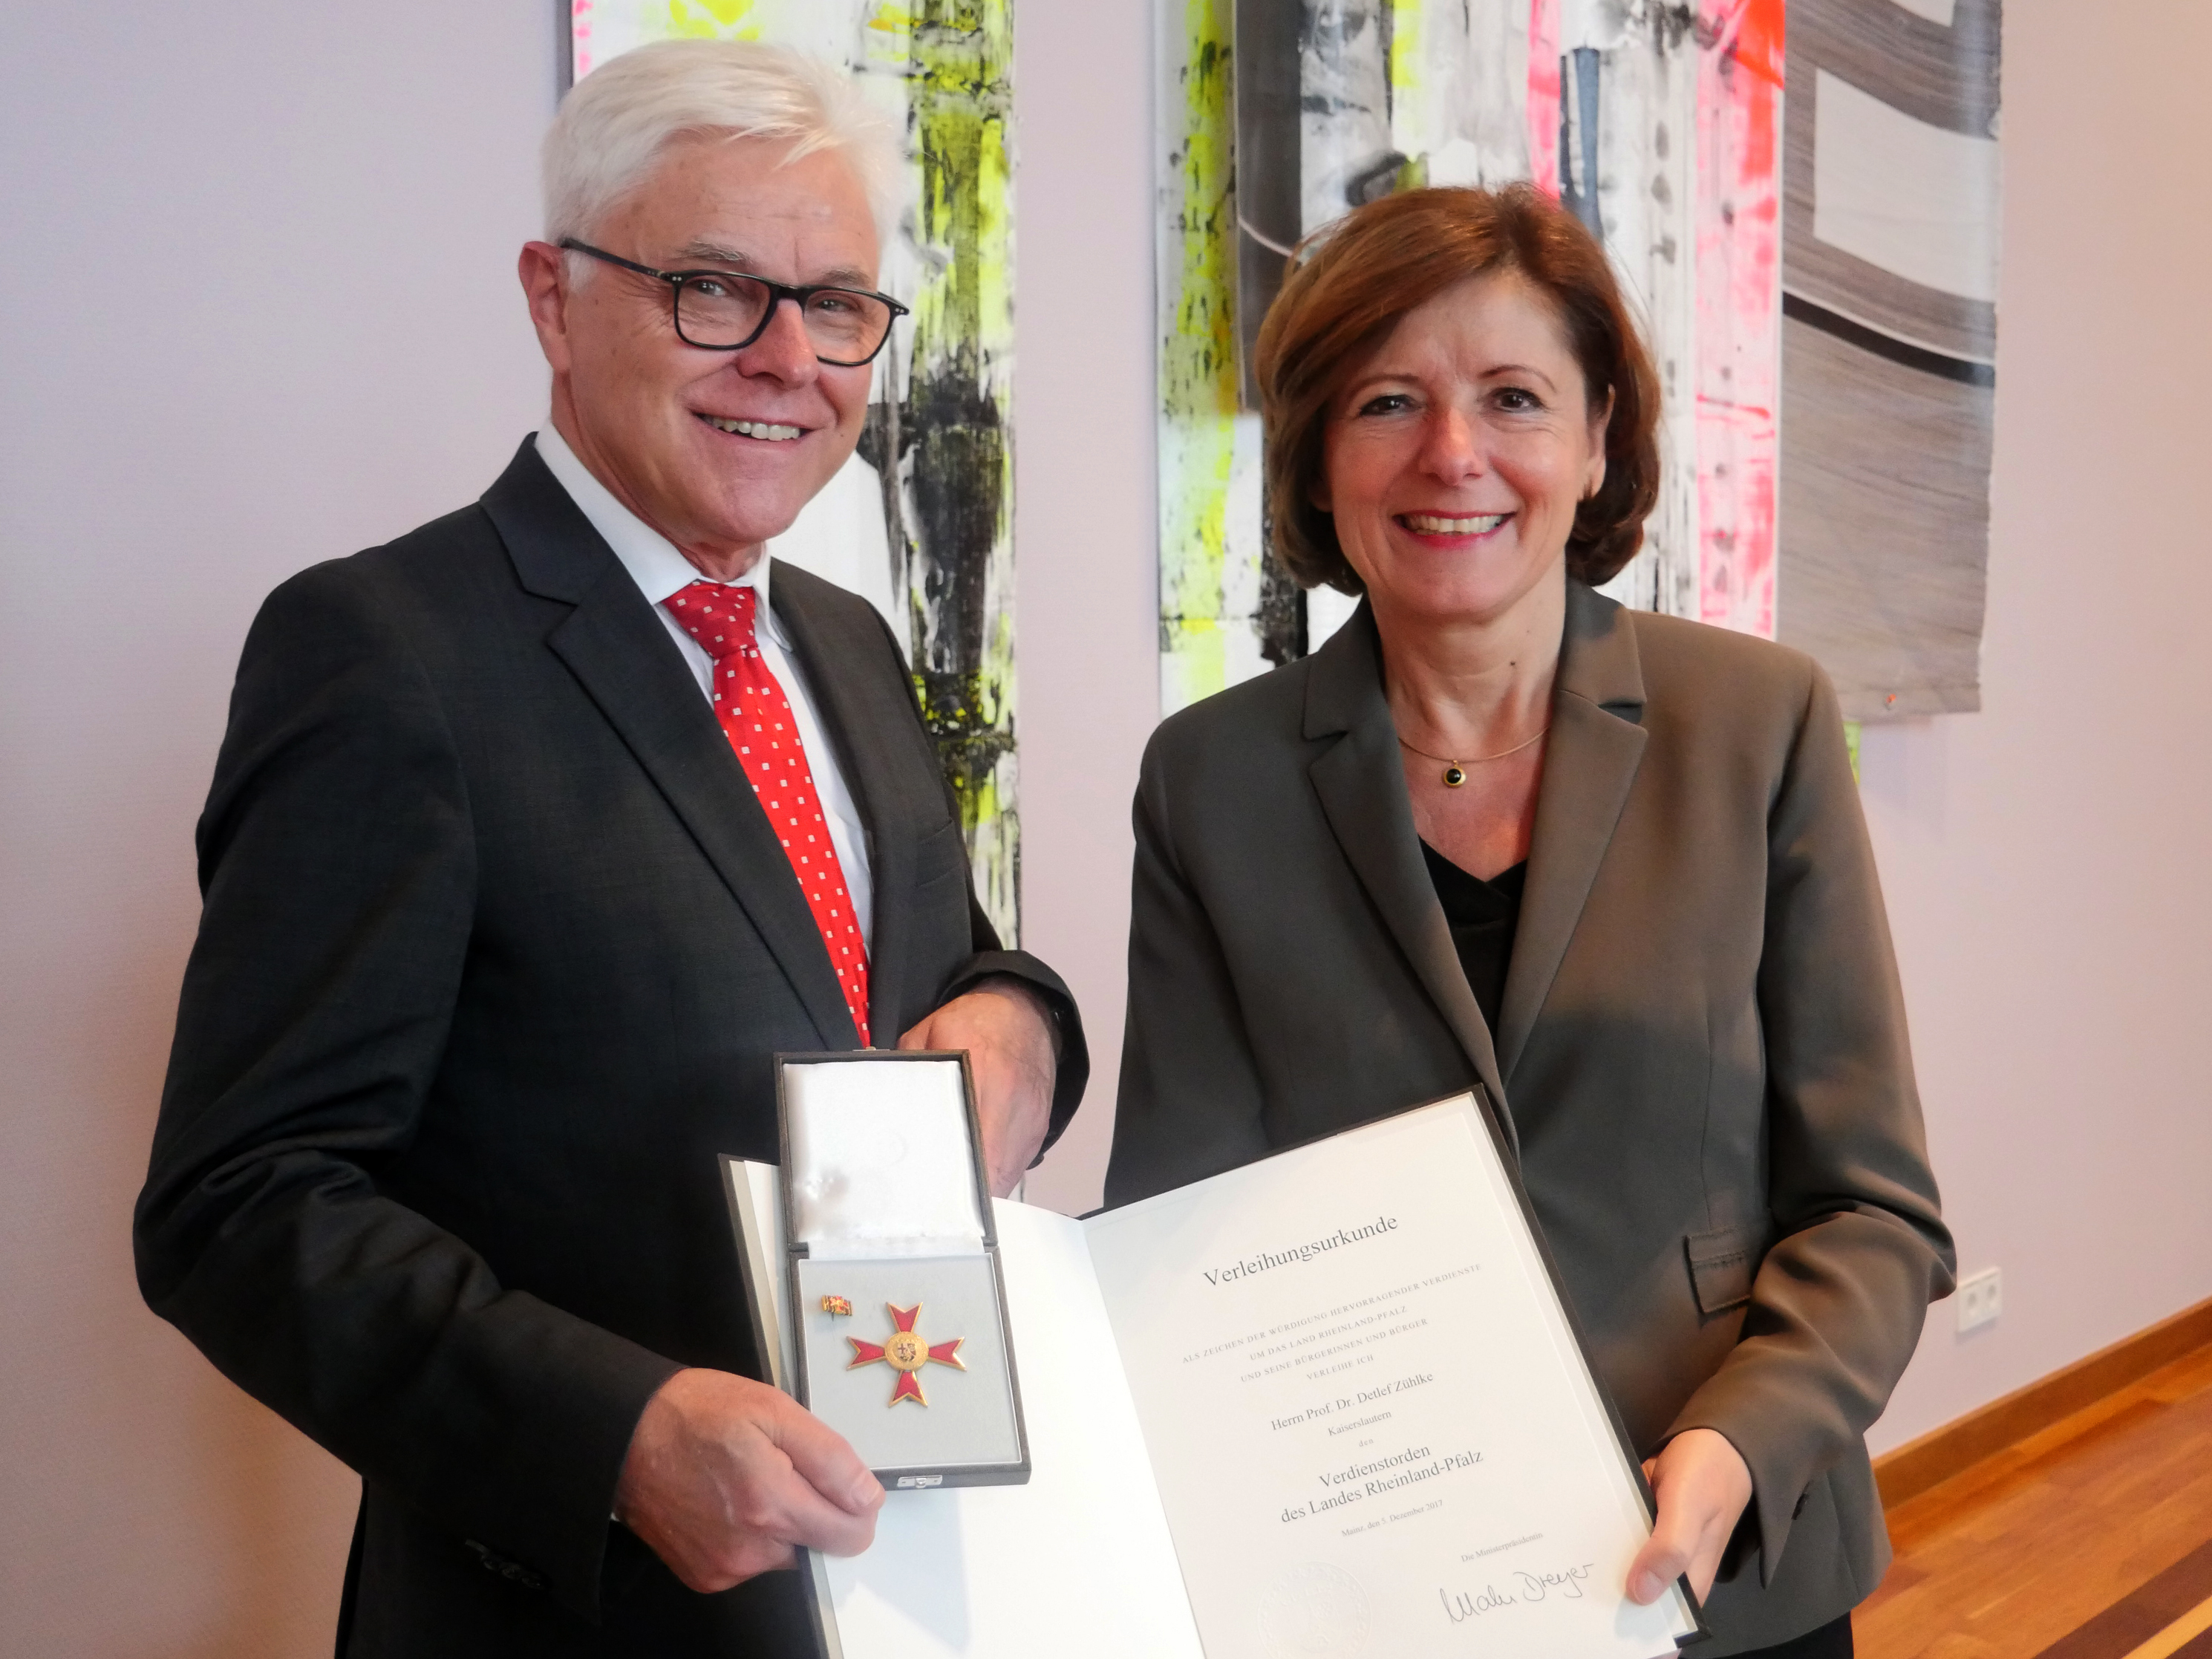 Malu Dreyer presents Order of Merit Award to Detlef Zühlke. Photo: © Staatskanzlei RLP